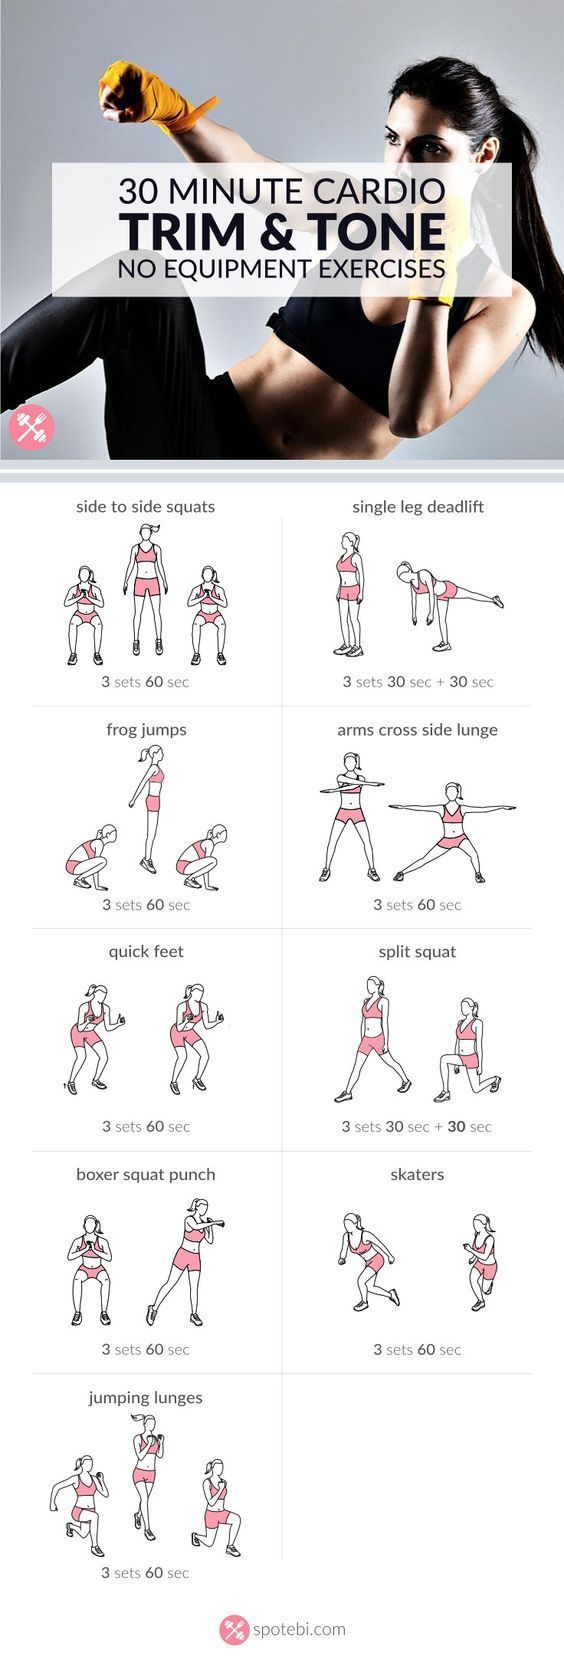 Work your legs, hips and glutes with these lower body and cardio exercises. A 30 minute workout, perfect for burning a ton of calories in a short period of time. http://www.spotebi.com/workout-routines/no-equipment-lower-body-and-cardio-exercises/Work your legs, hips and glutes with these lower body